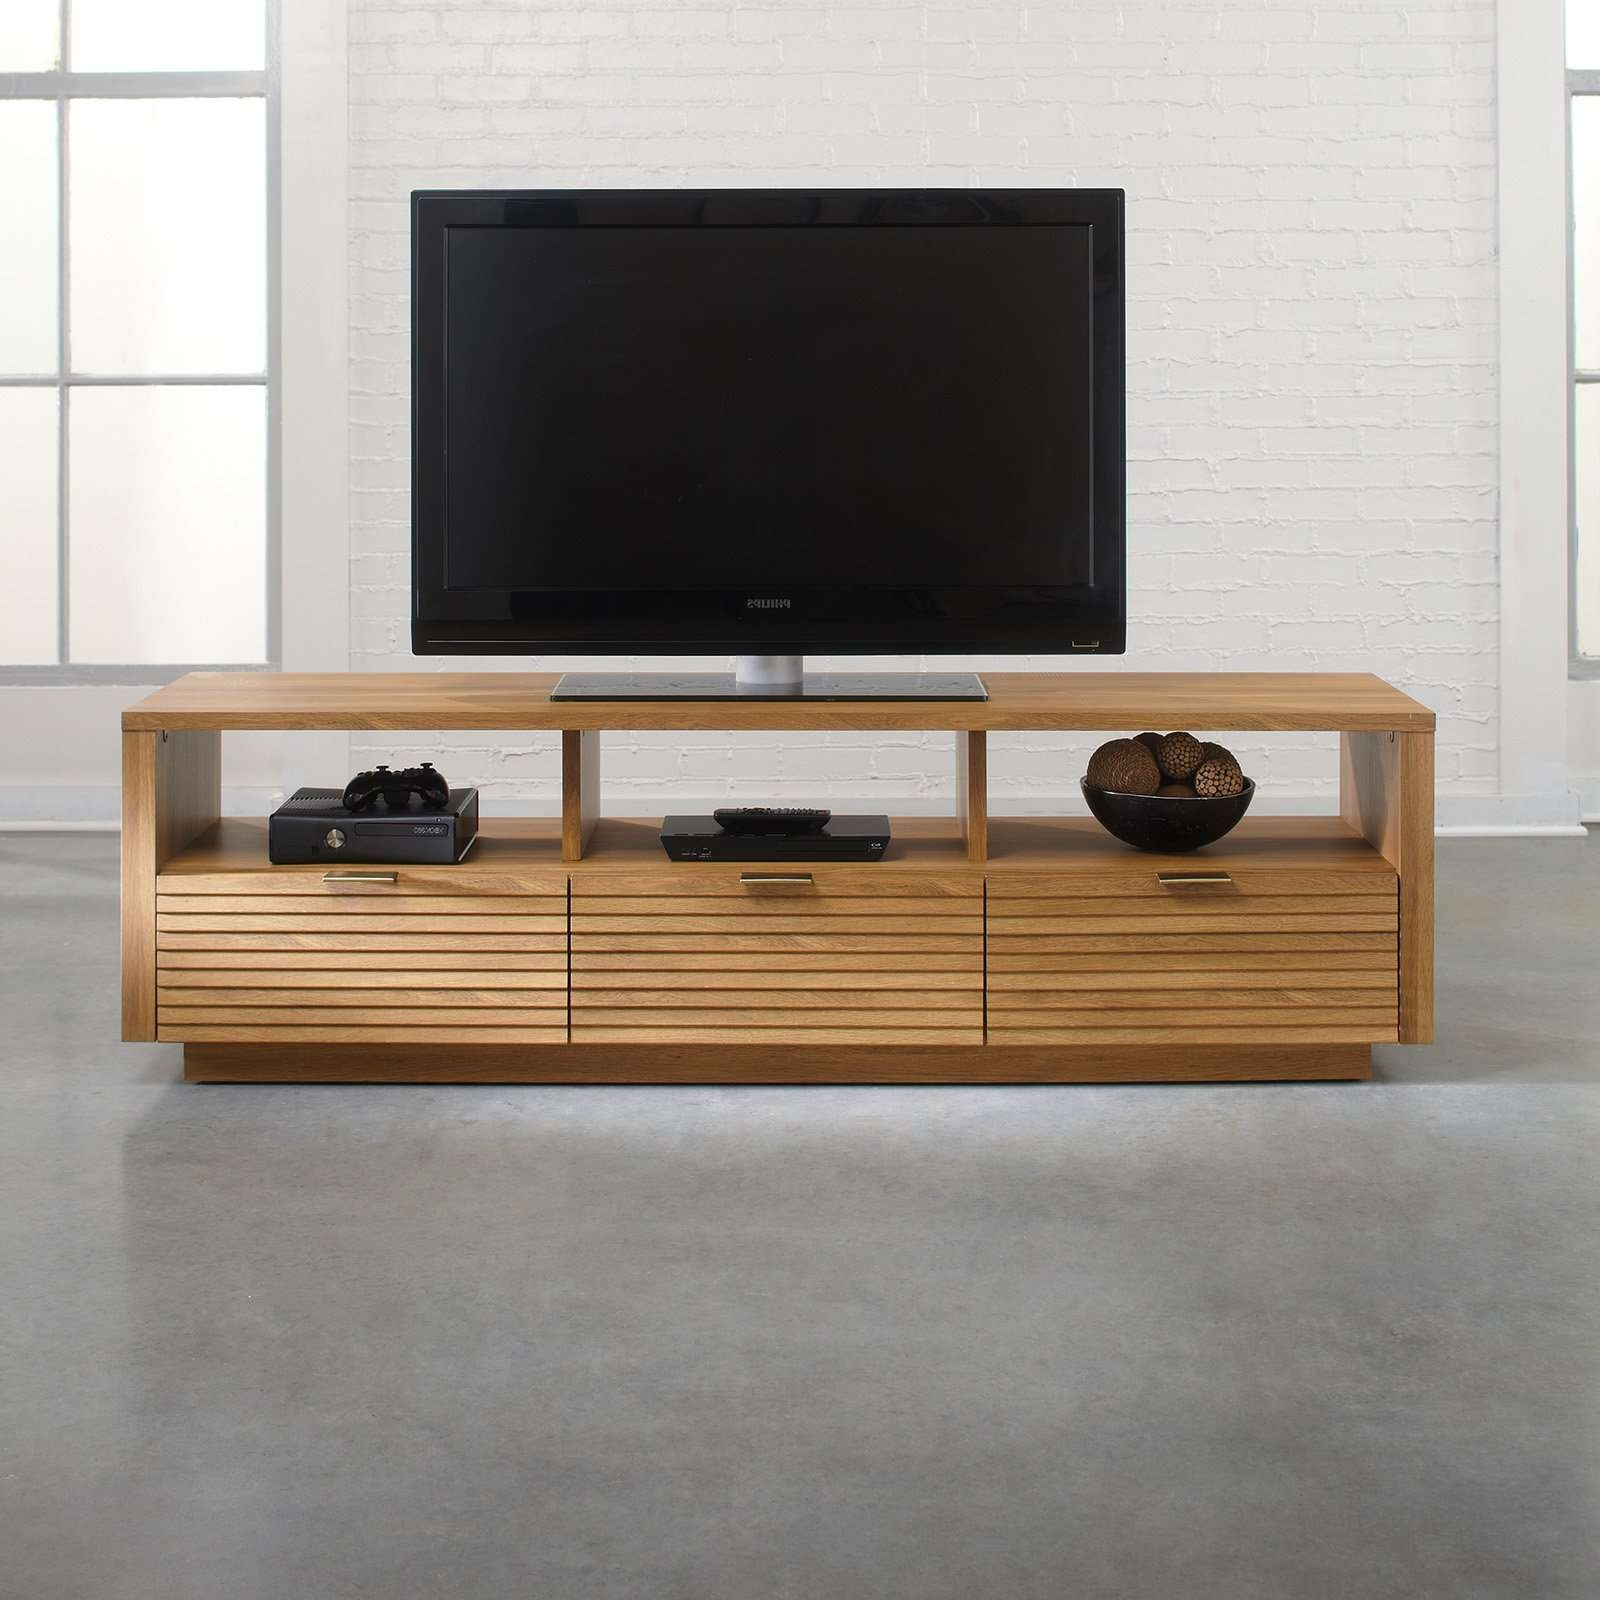 Good Hokku Designs Tv Stand 63 On Home Improvement Ideas With Throughout Hokku Tv Stands (View 3 of 15)